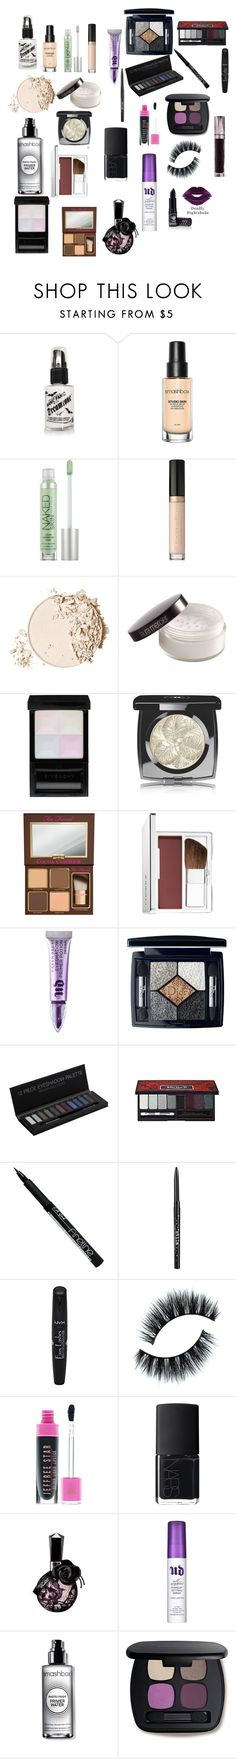 """""""MUOTD"""" by toxxic-venom on Polyvore featuring beauty, Smashbox, Urban Decay, Too Faced Cosmetics, Laura Mercier, Givenchy, Chanel, Clinique, Christian Dior and Kat Von D"""